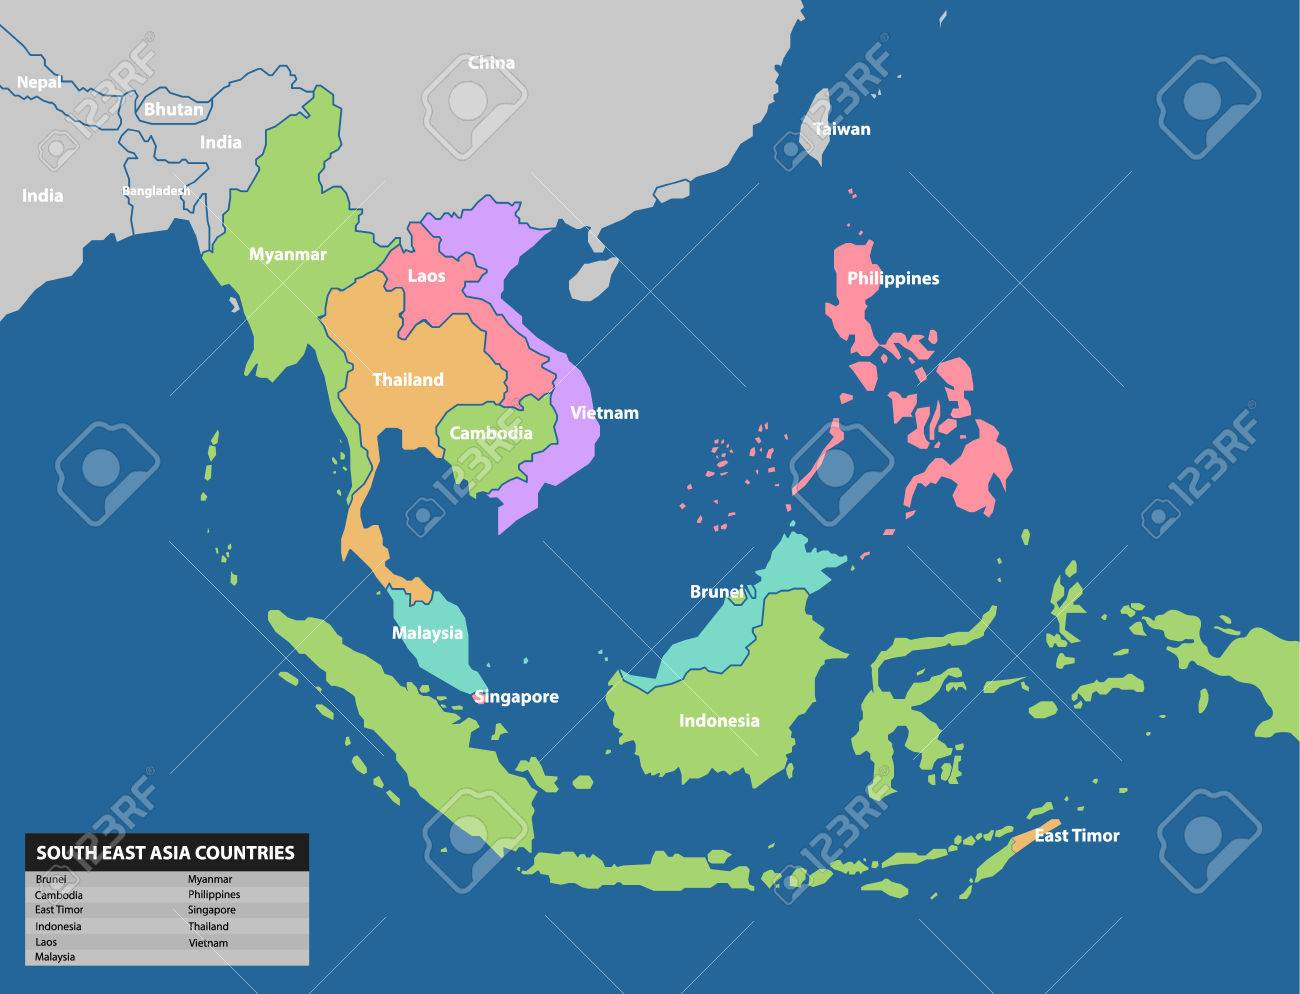 Southeast Asia Map. Maps Collection Royalty Free Cliparts, Vectors ...